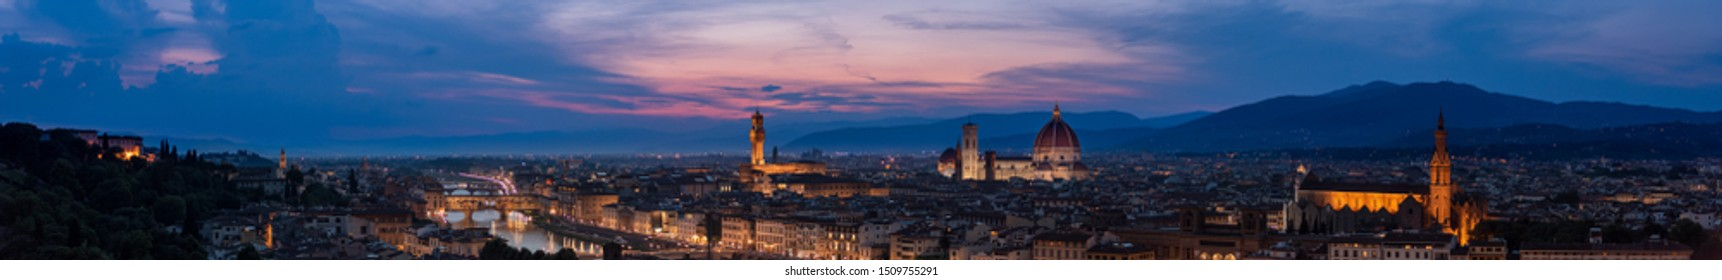 Florence sunset very large high resolution panorama with all main florentine landmarks (cathedral, Palazzo Vecchio, Ponte Vecchio bridge, Boboli gardens). Over 23,000 px wide: 6.5 feet (2m) at 300 dpi